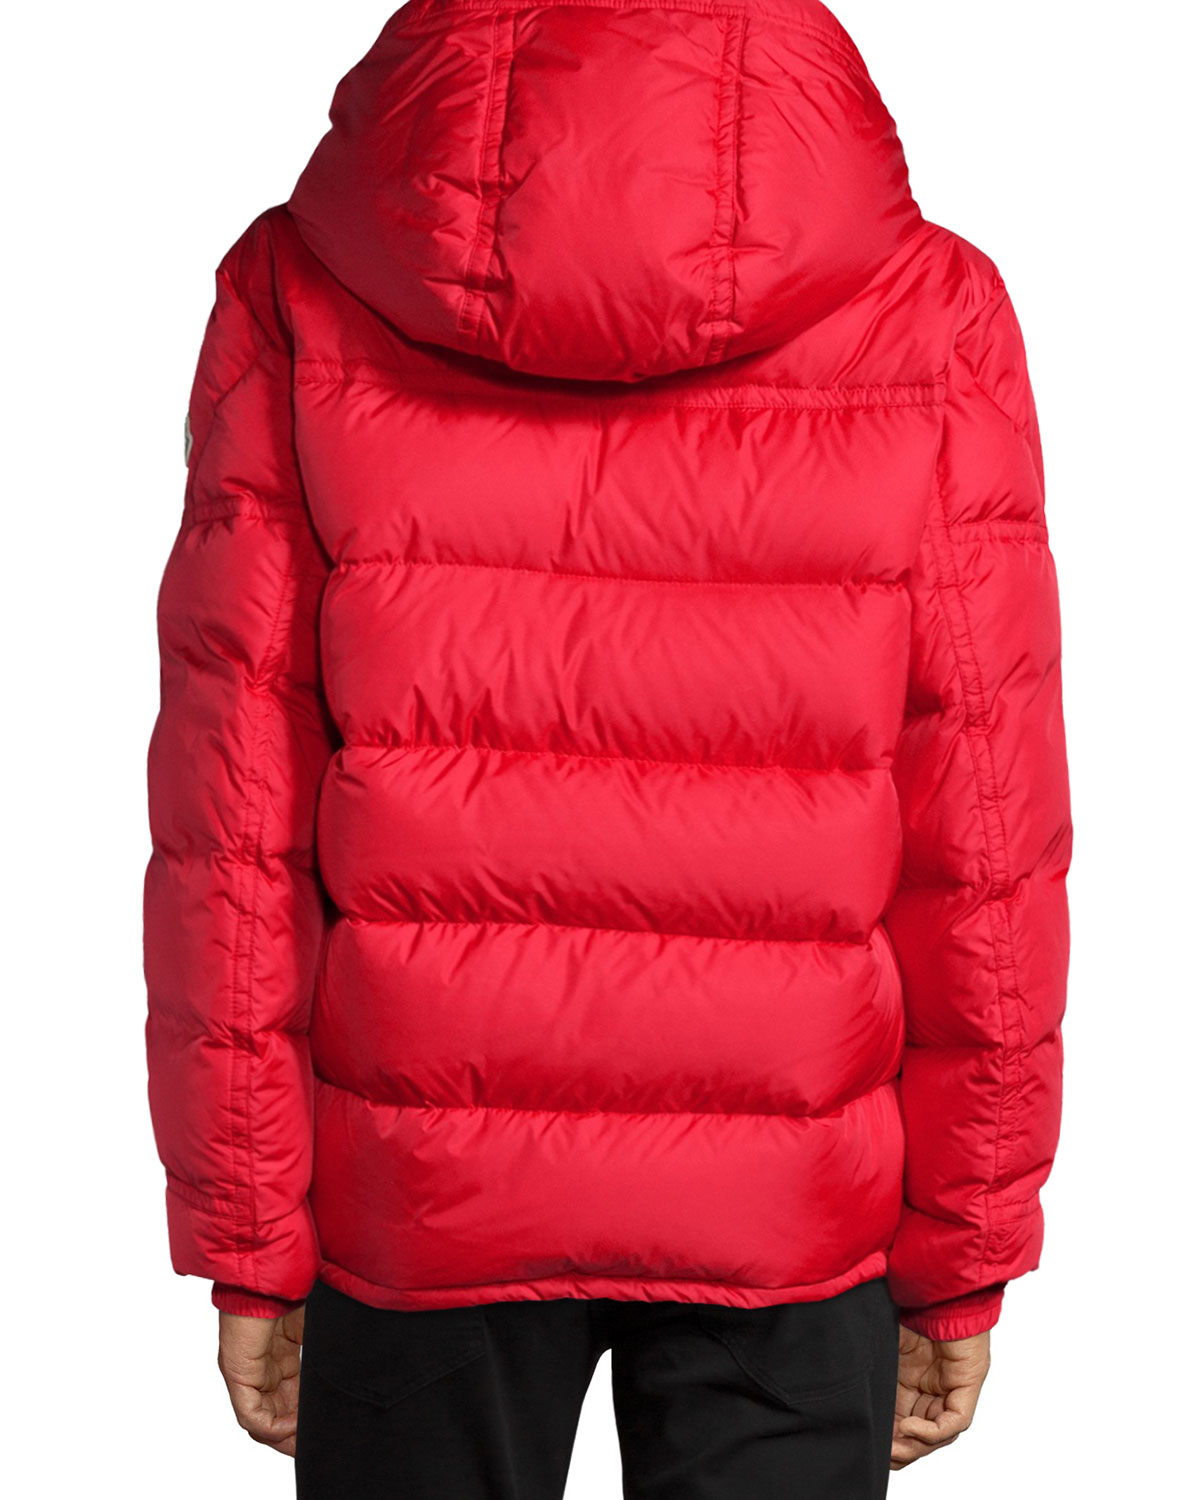 Moncler Brel Puffer Jacket With Removable Hood In Red For